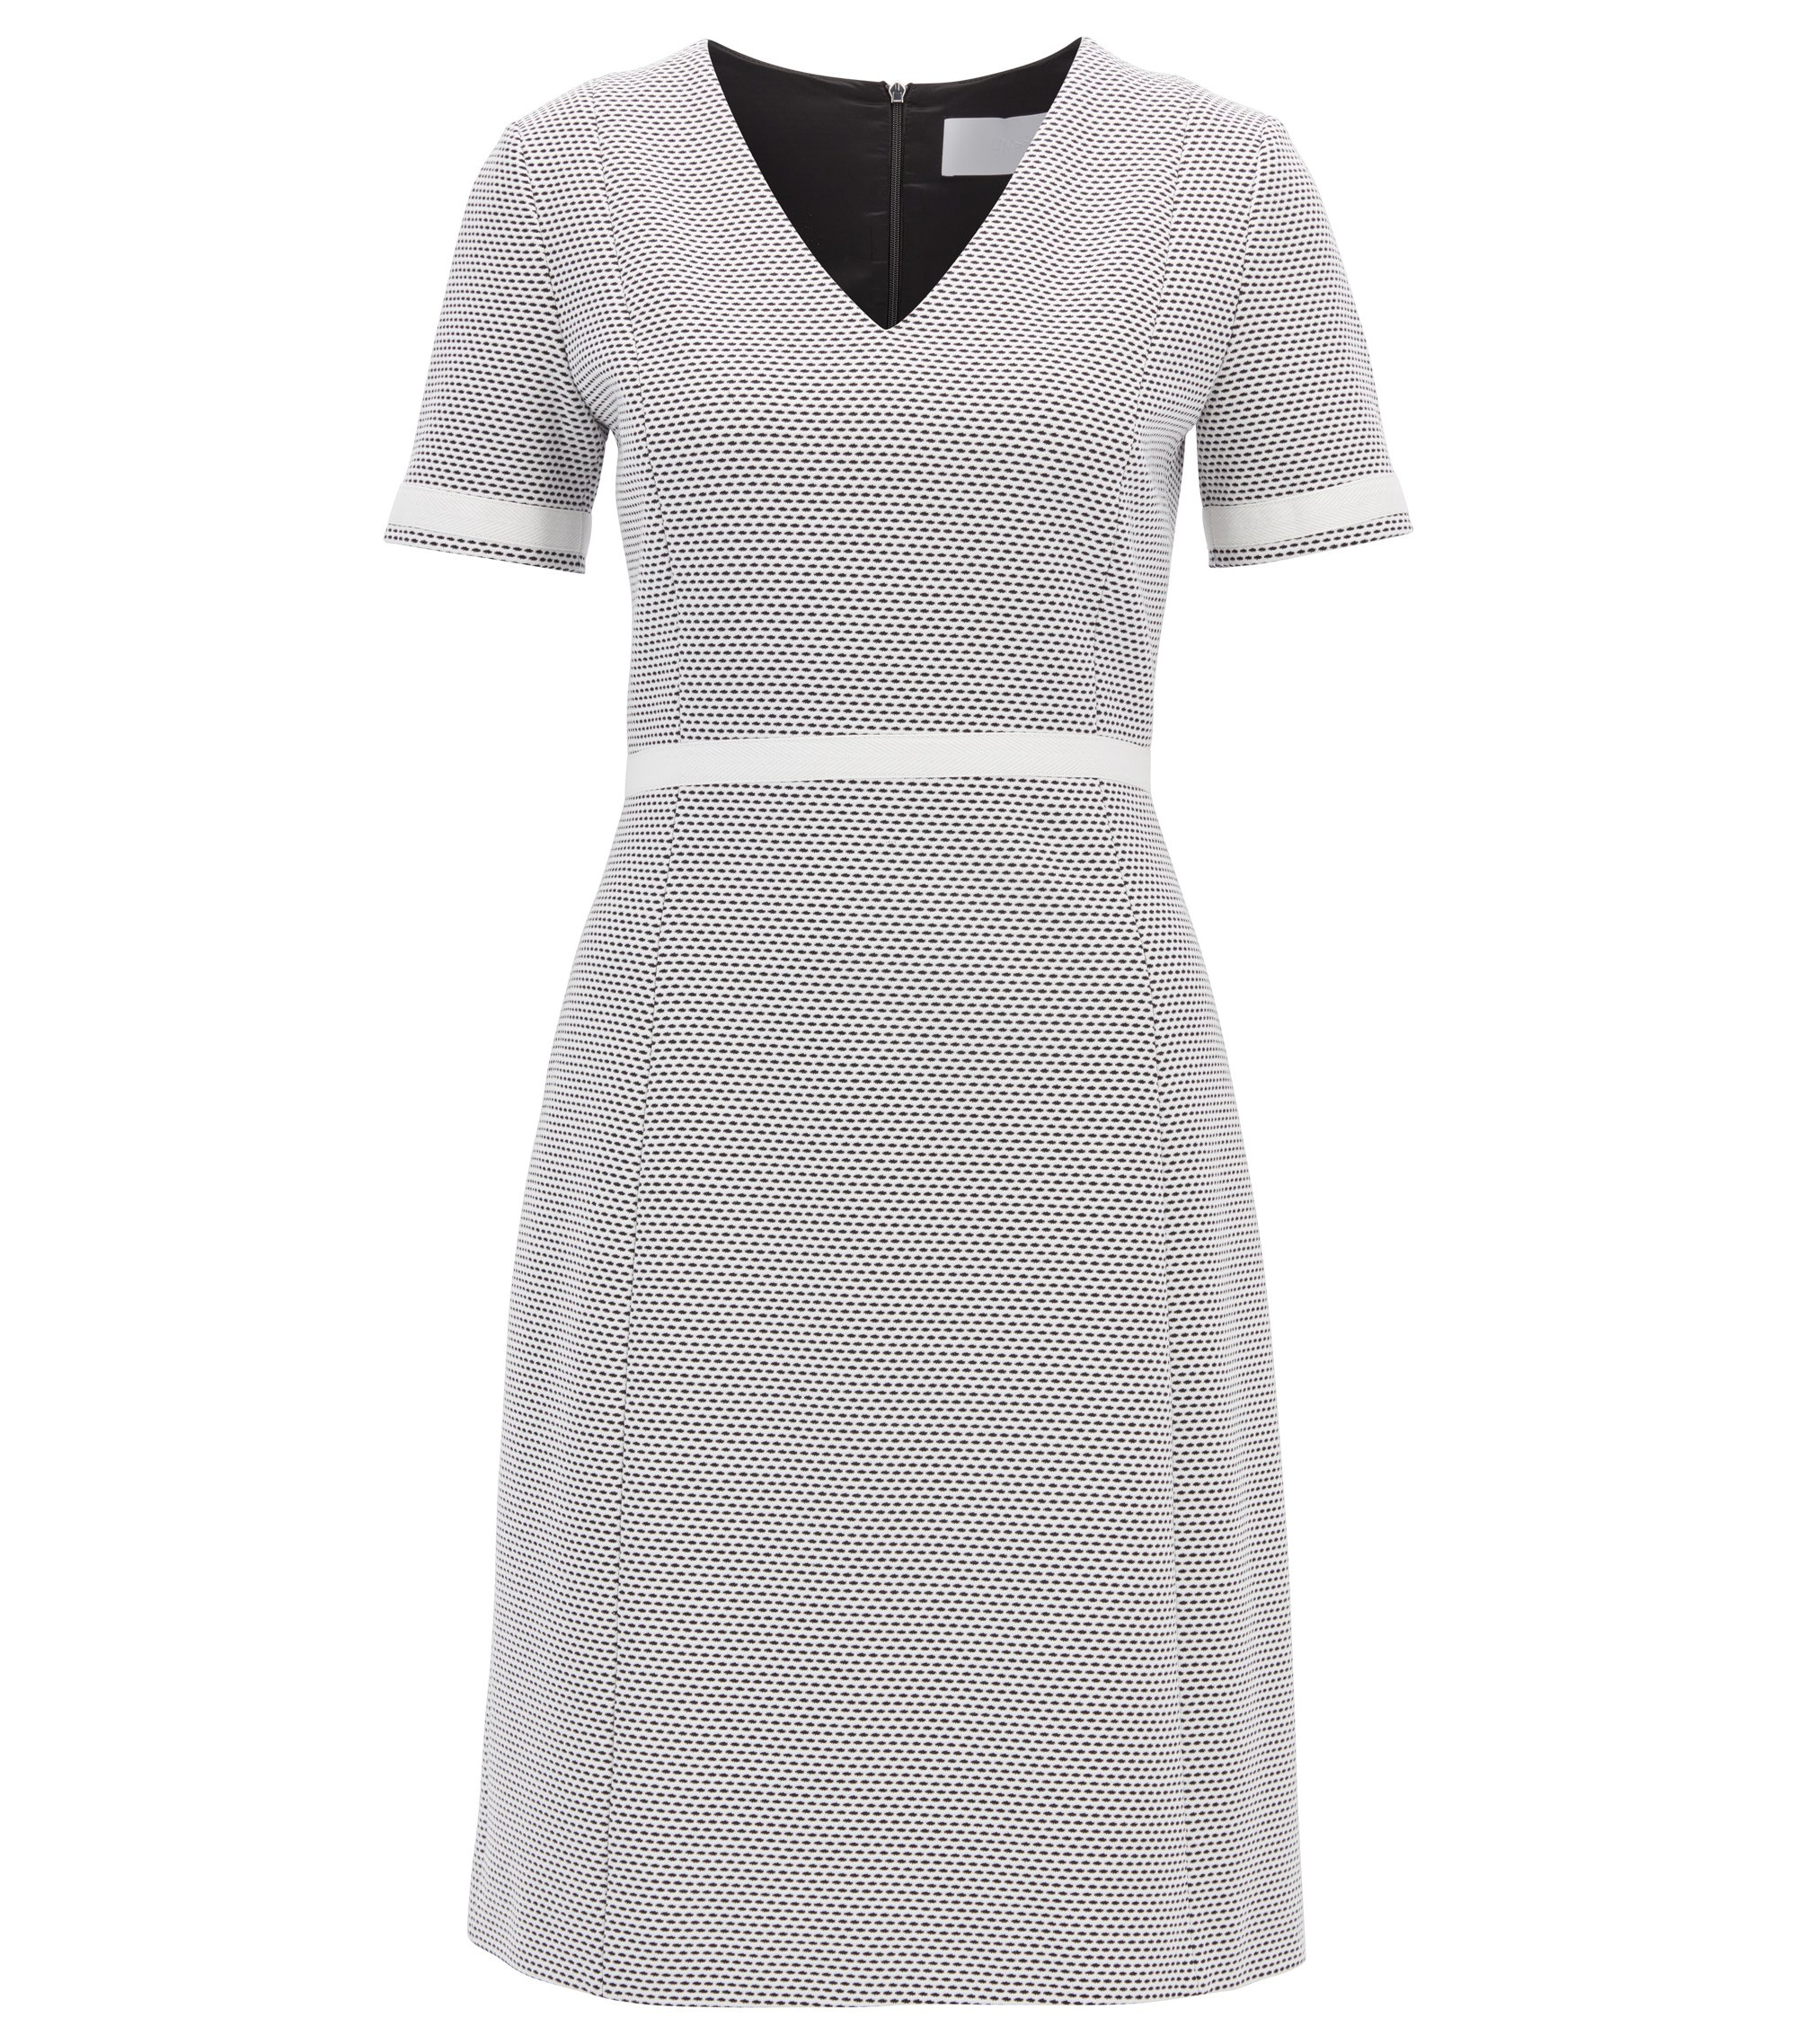 V-neck dress in structured cotton jersey, Patterned